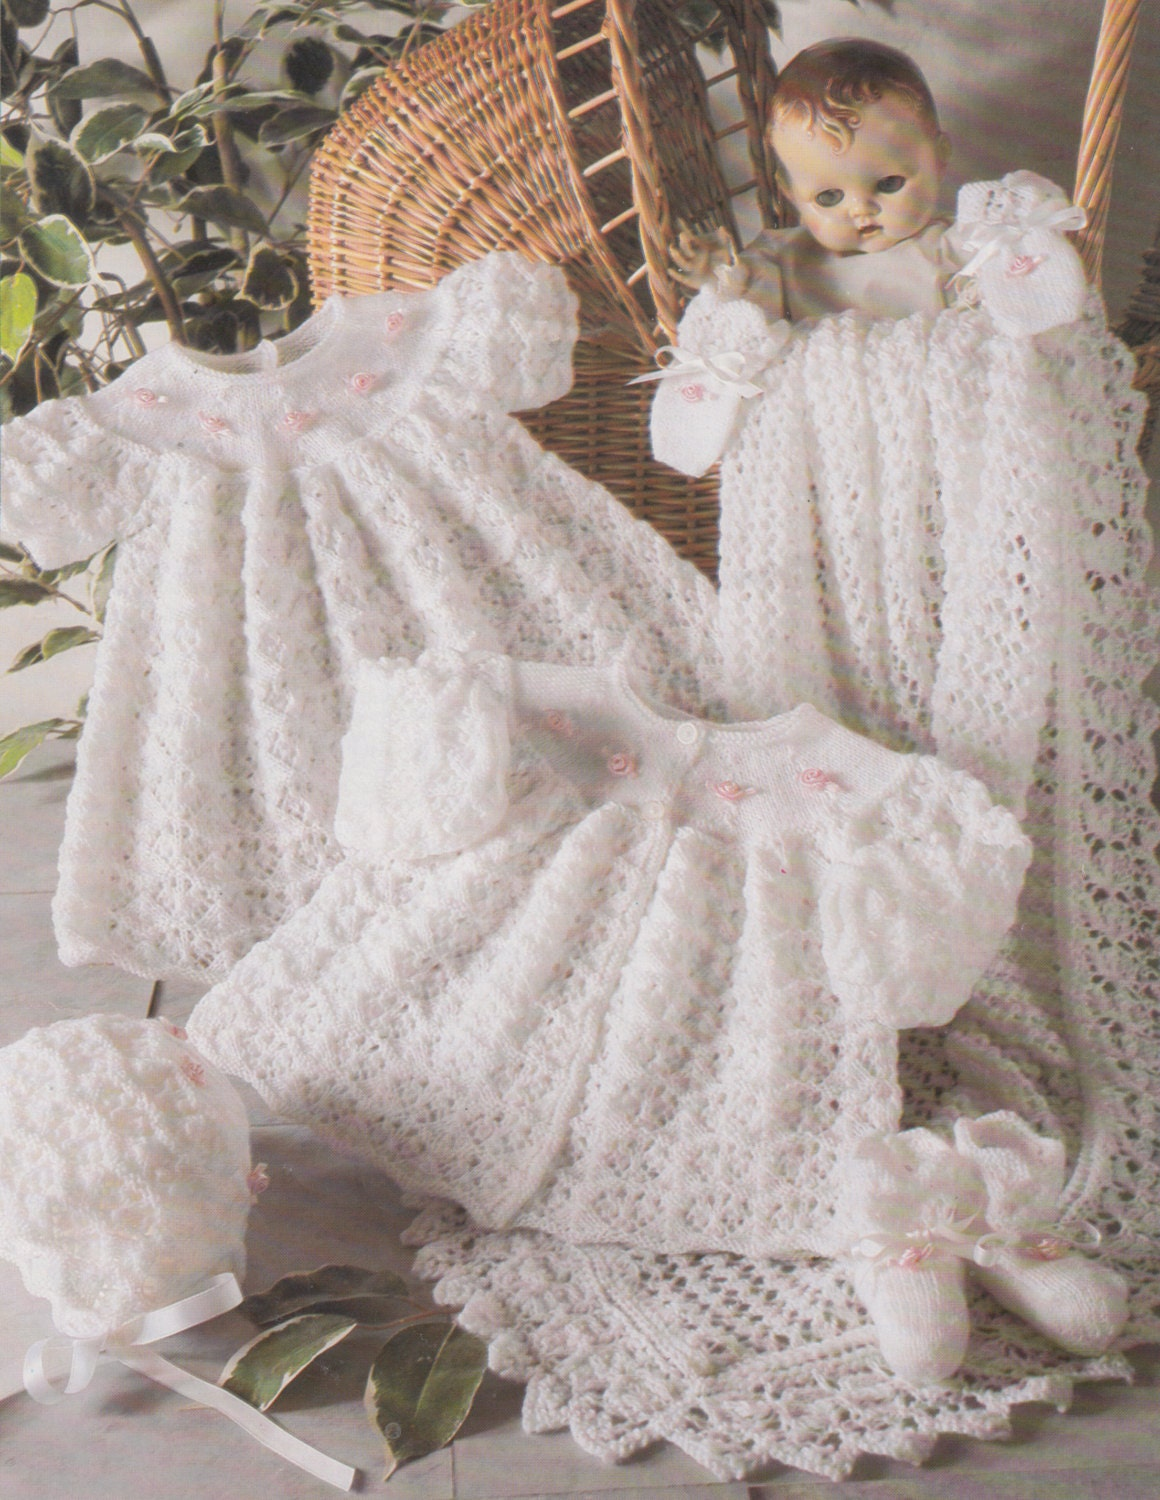 Knit Baby Blanket Pattern Easy Free : vintage baby knitting pattern for 3 ply layette set blanket